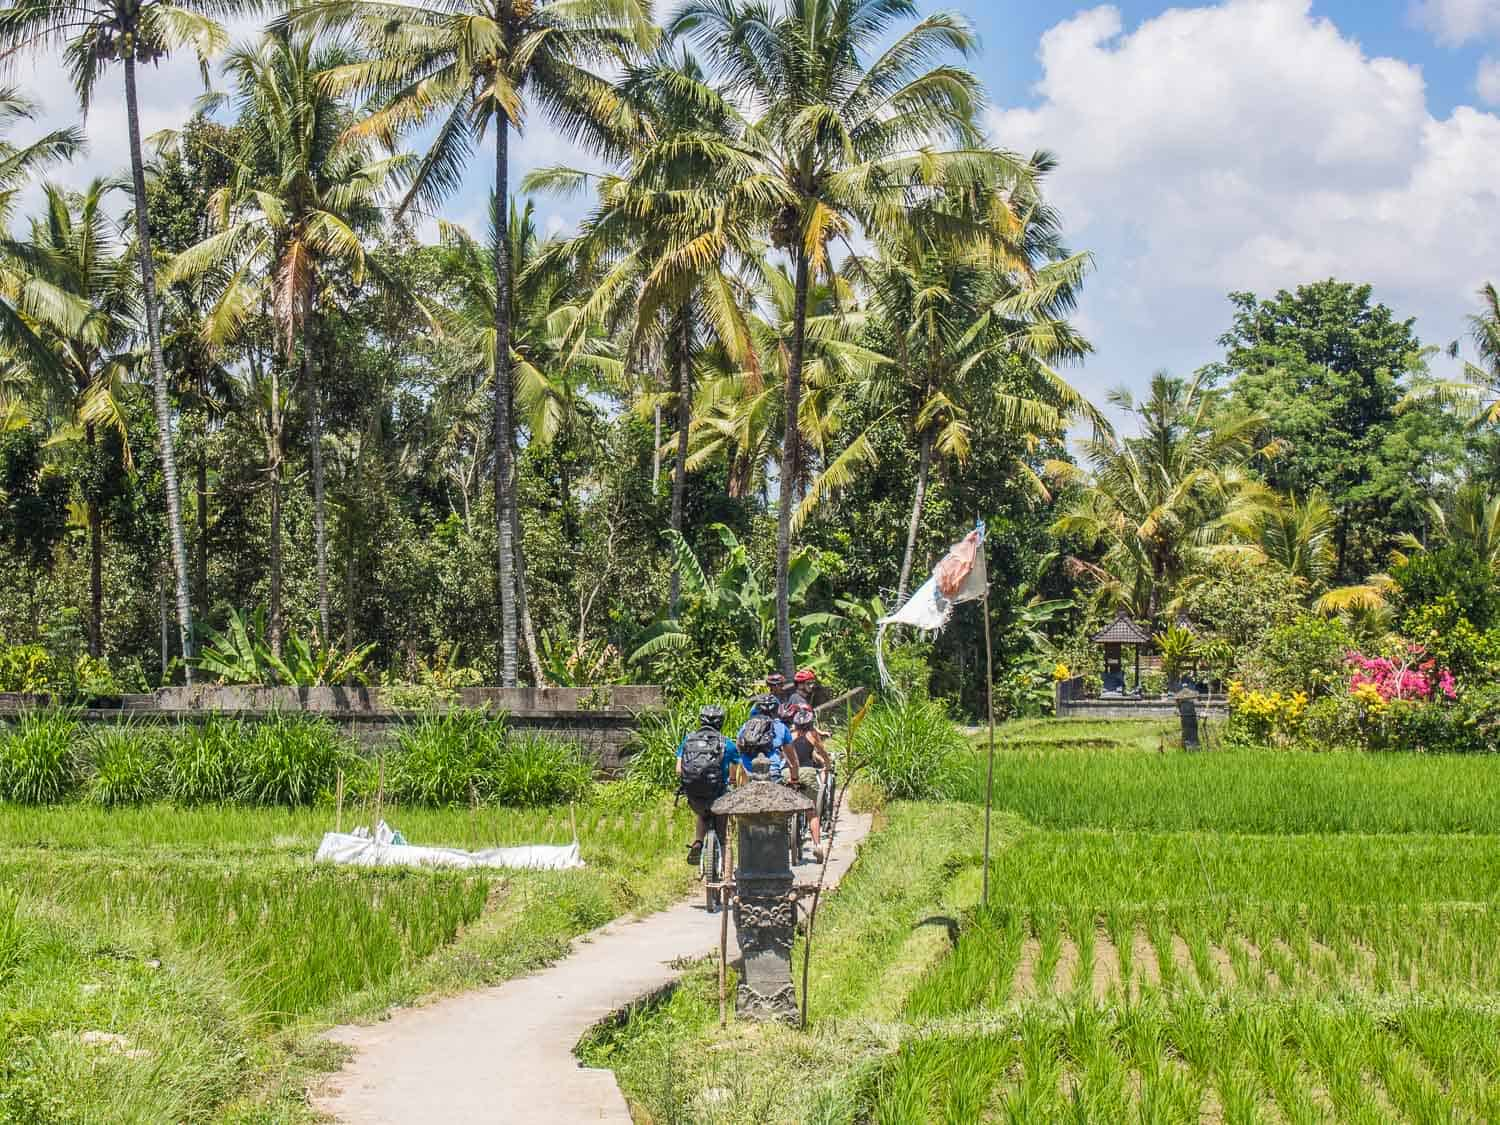 Eco Cycling Tour Bali review -Things to Do in Ubud